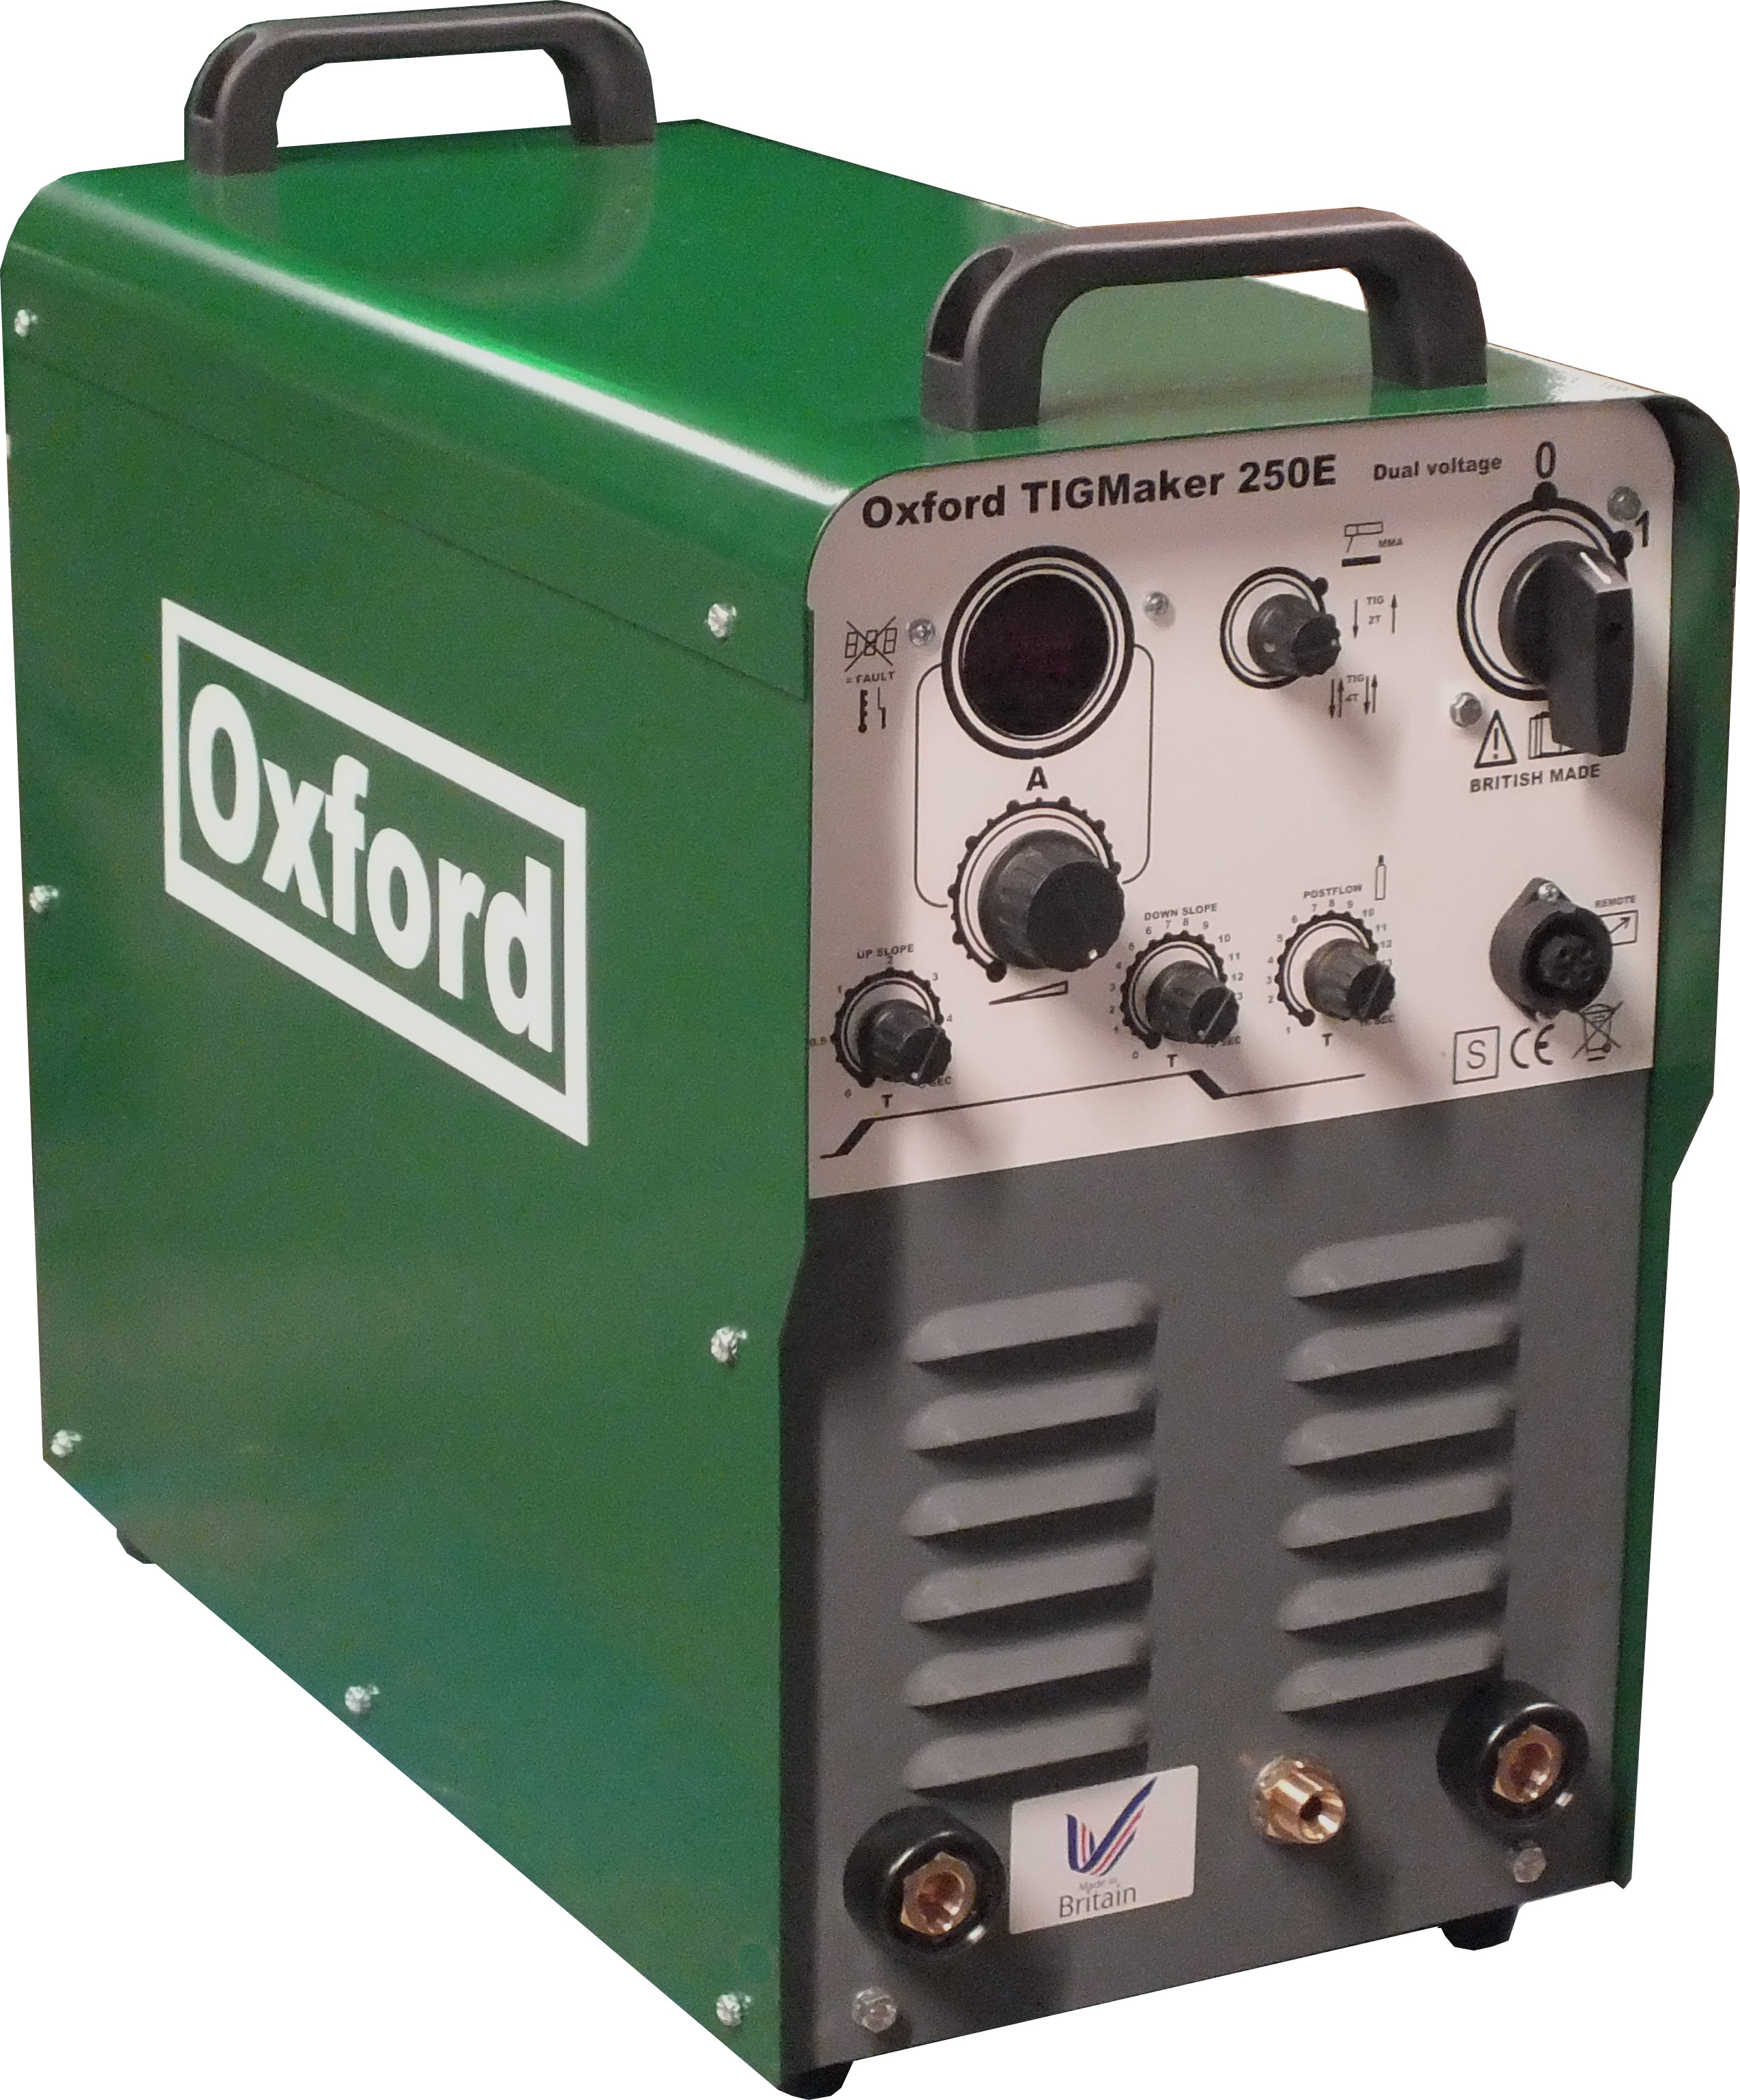 Oxford  TIGMaker 300E dual voltage 400V 3 phase Image